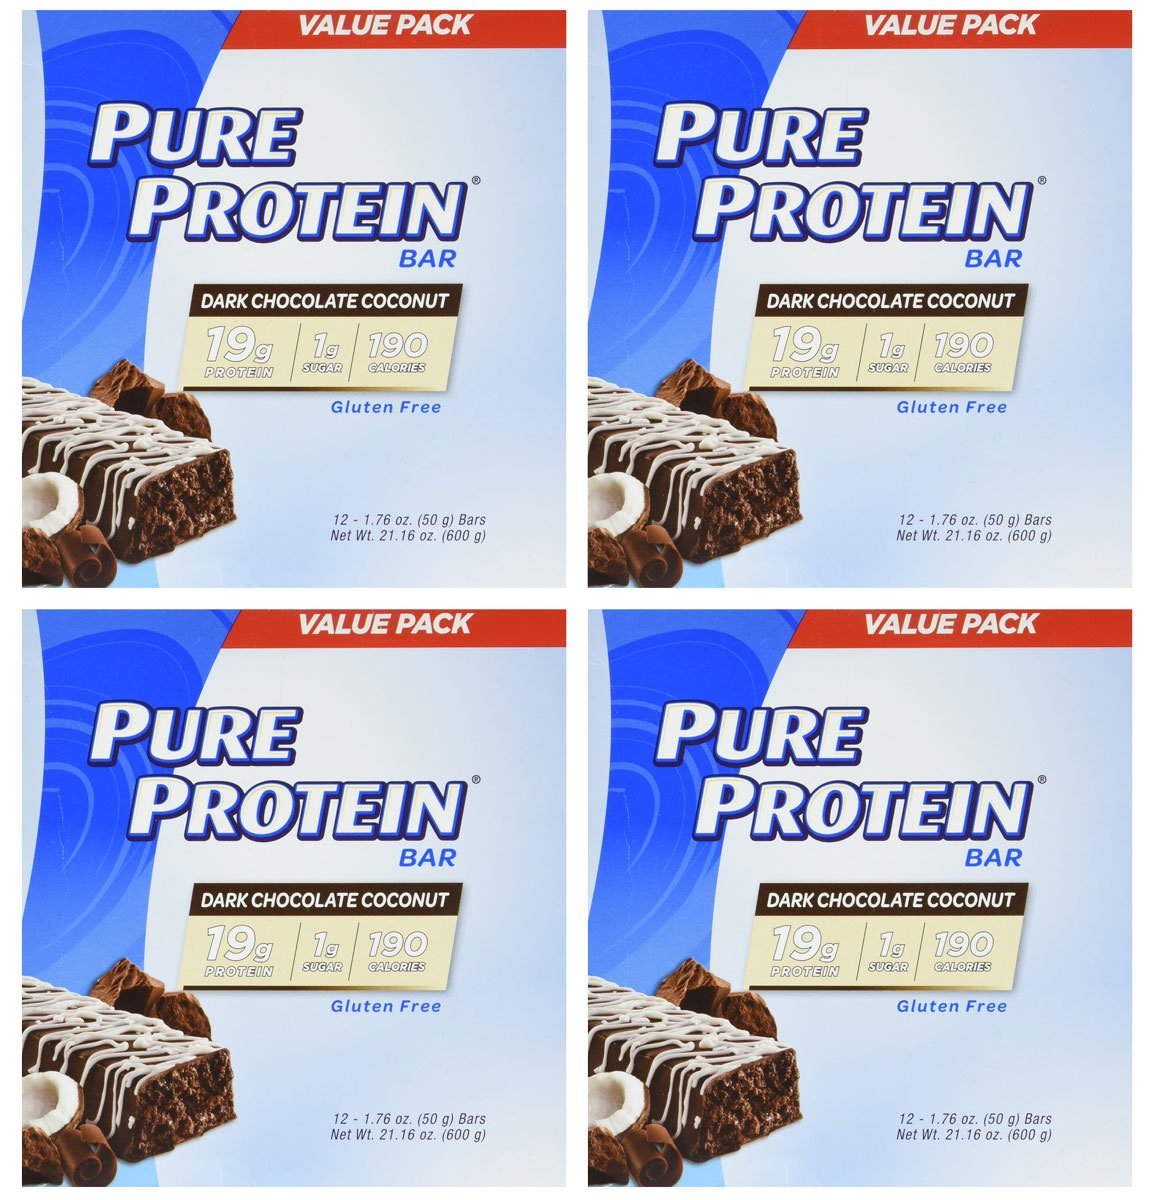 Pure Protein Dark Chocolate Coconut, 1.76oz, 4 Pack (12 Count)